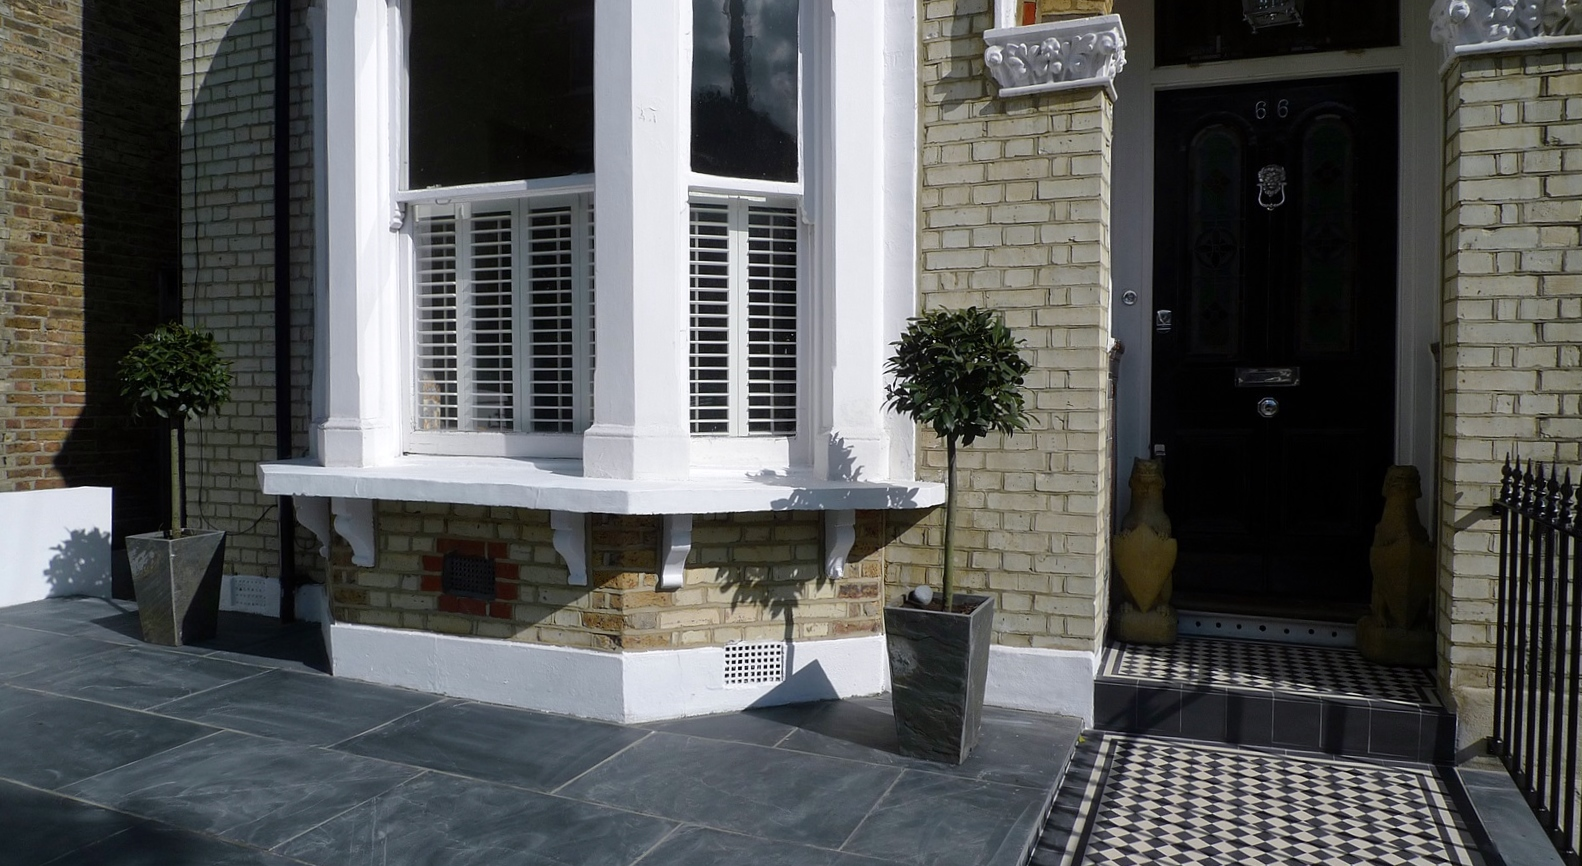 Mosaic Tiles Uk >> Victorian Front Garden Design London - London Garden Design